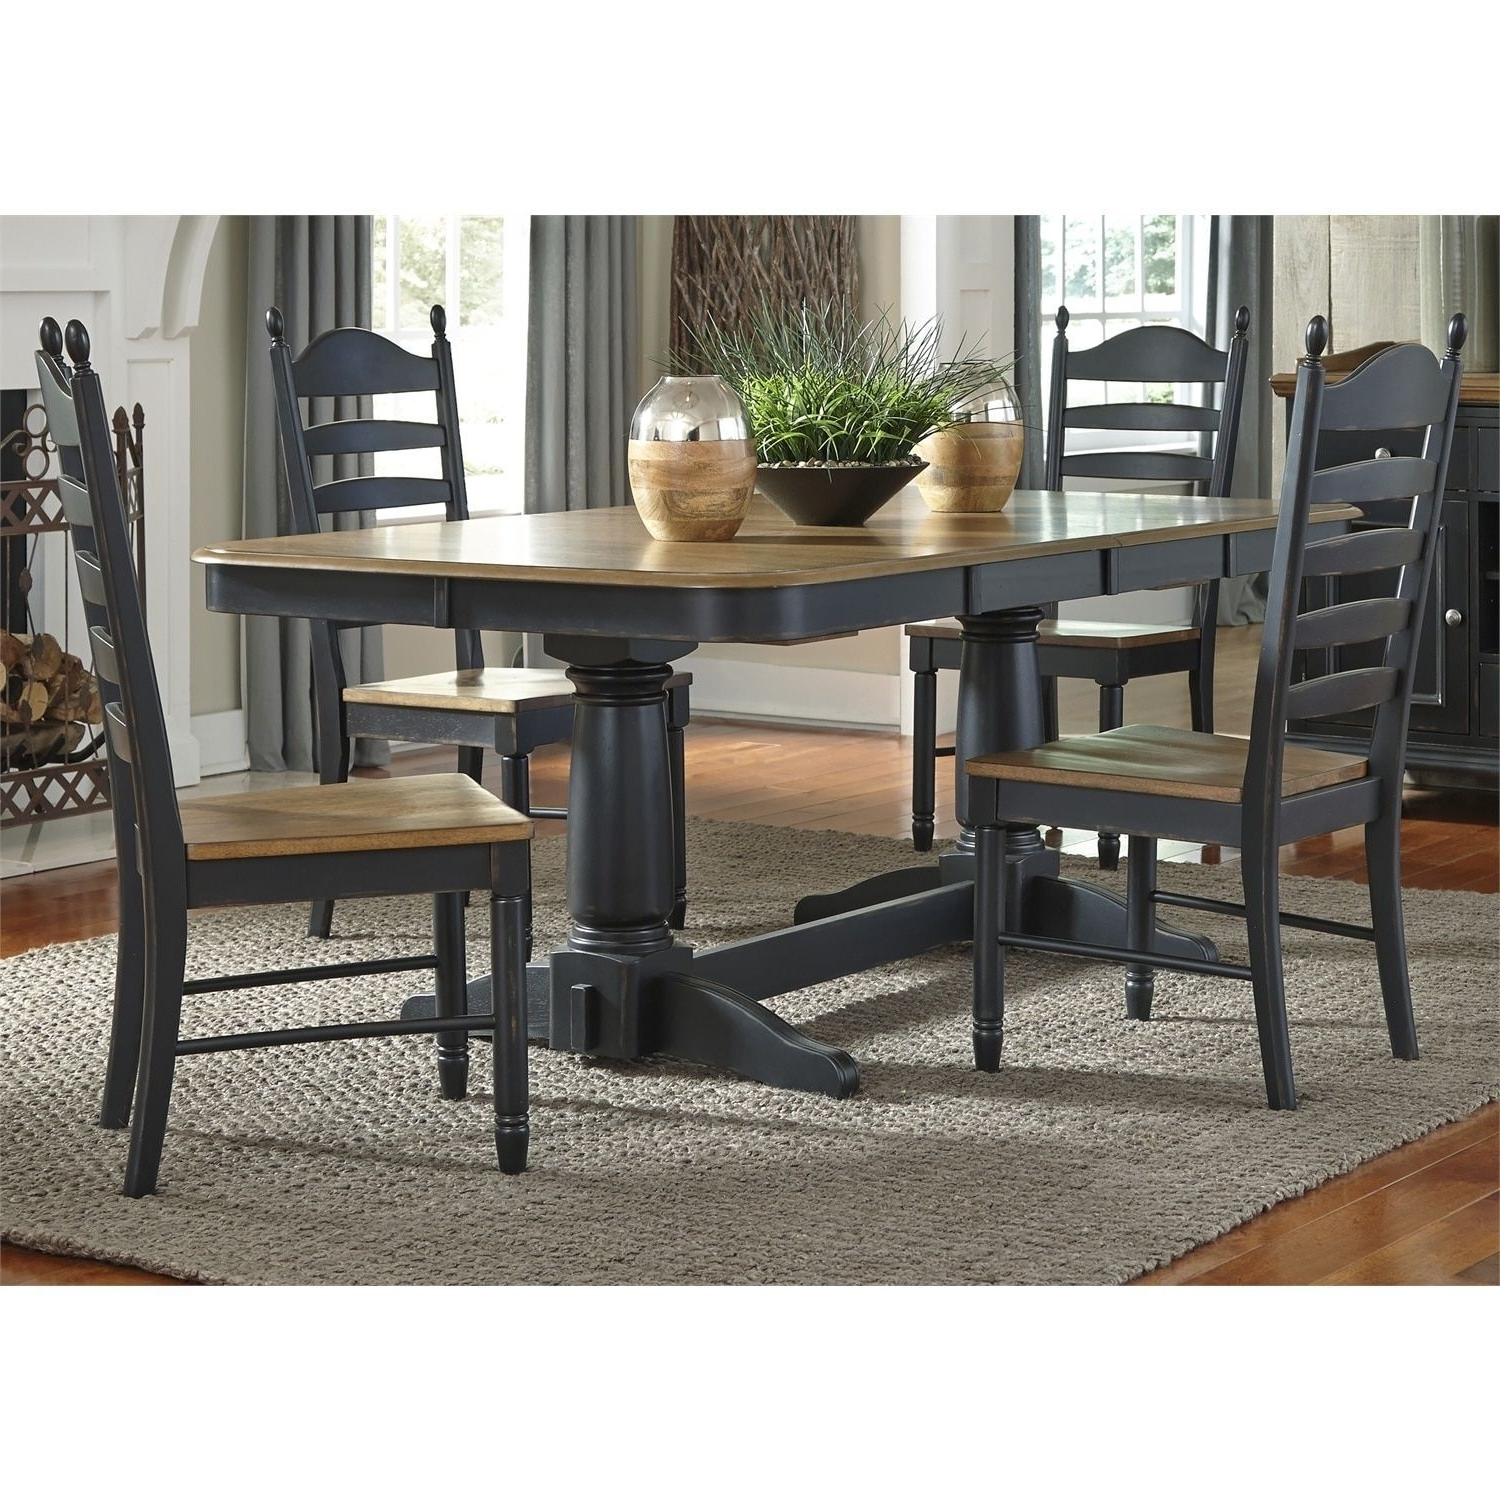 Craftsman 7 Piece Rectangular Extension Dining Sets With Arm & Uph Side Chairs Throughout Most Current Liberty Springfield Ii Honey And Black Double Pedestal 5 Piece (View 9 of 25)